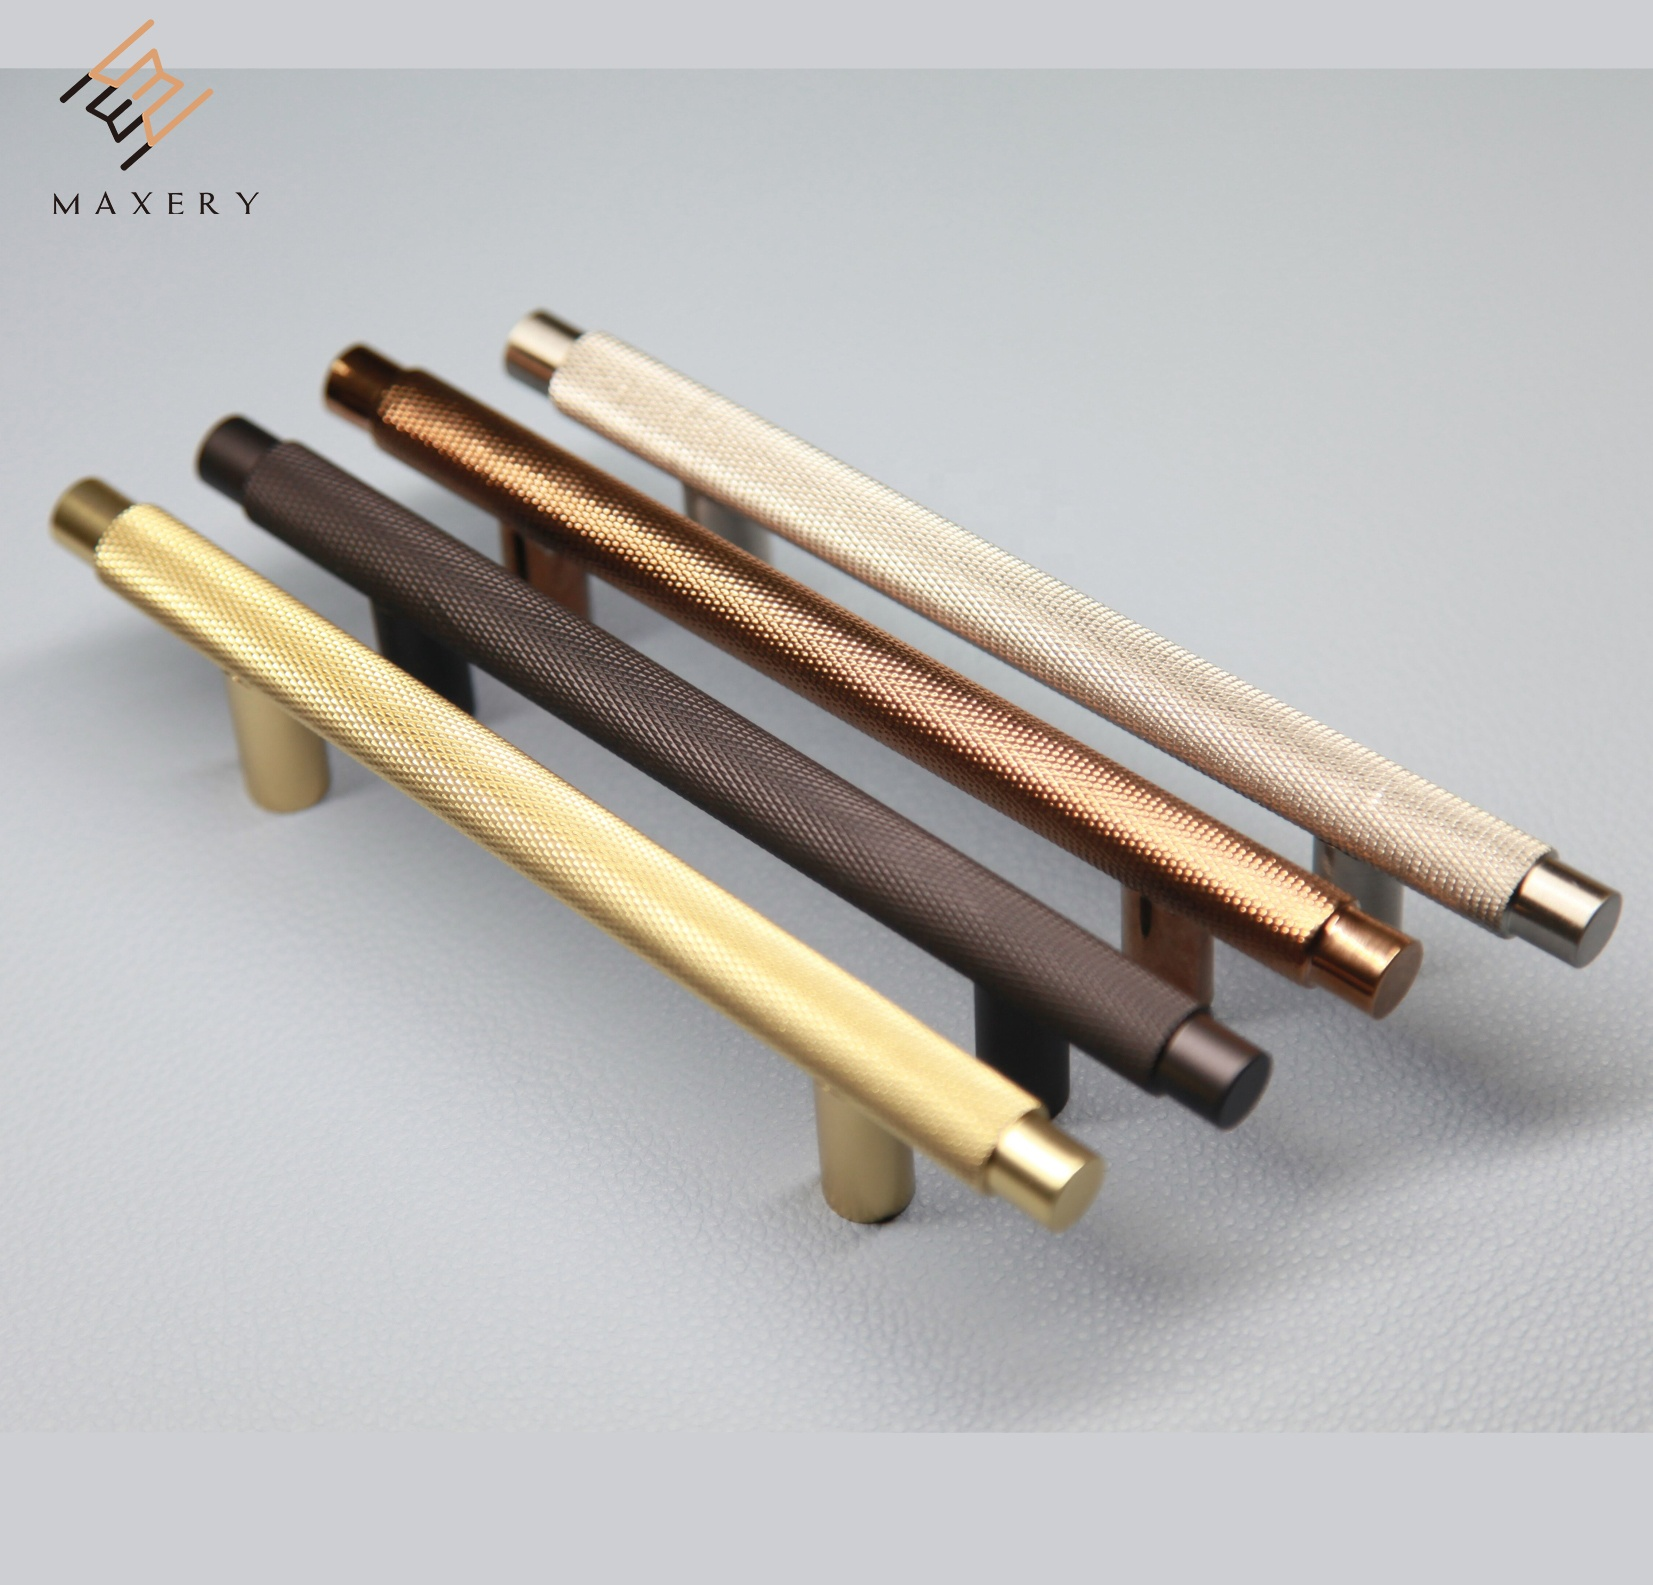 Brass/copper unique furniture <strong>handle</strong> designer knurling furniture/Cabinet <strong>handle</strong>